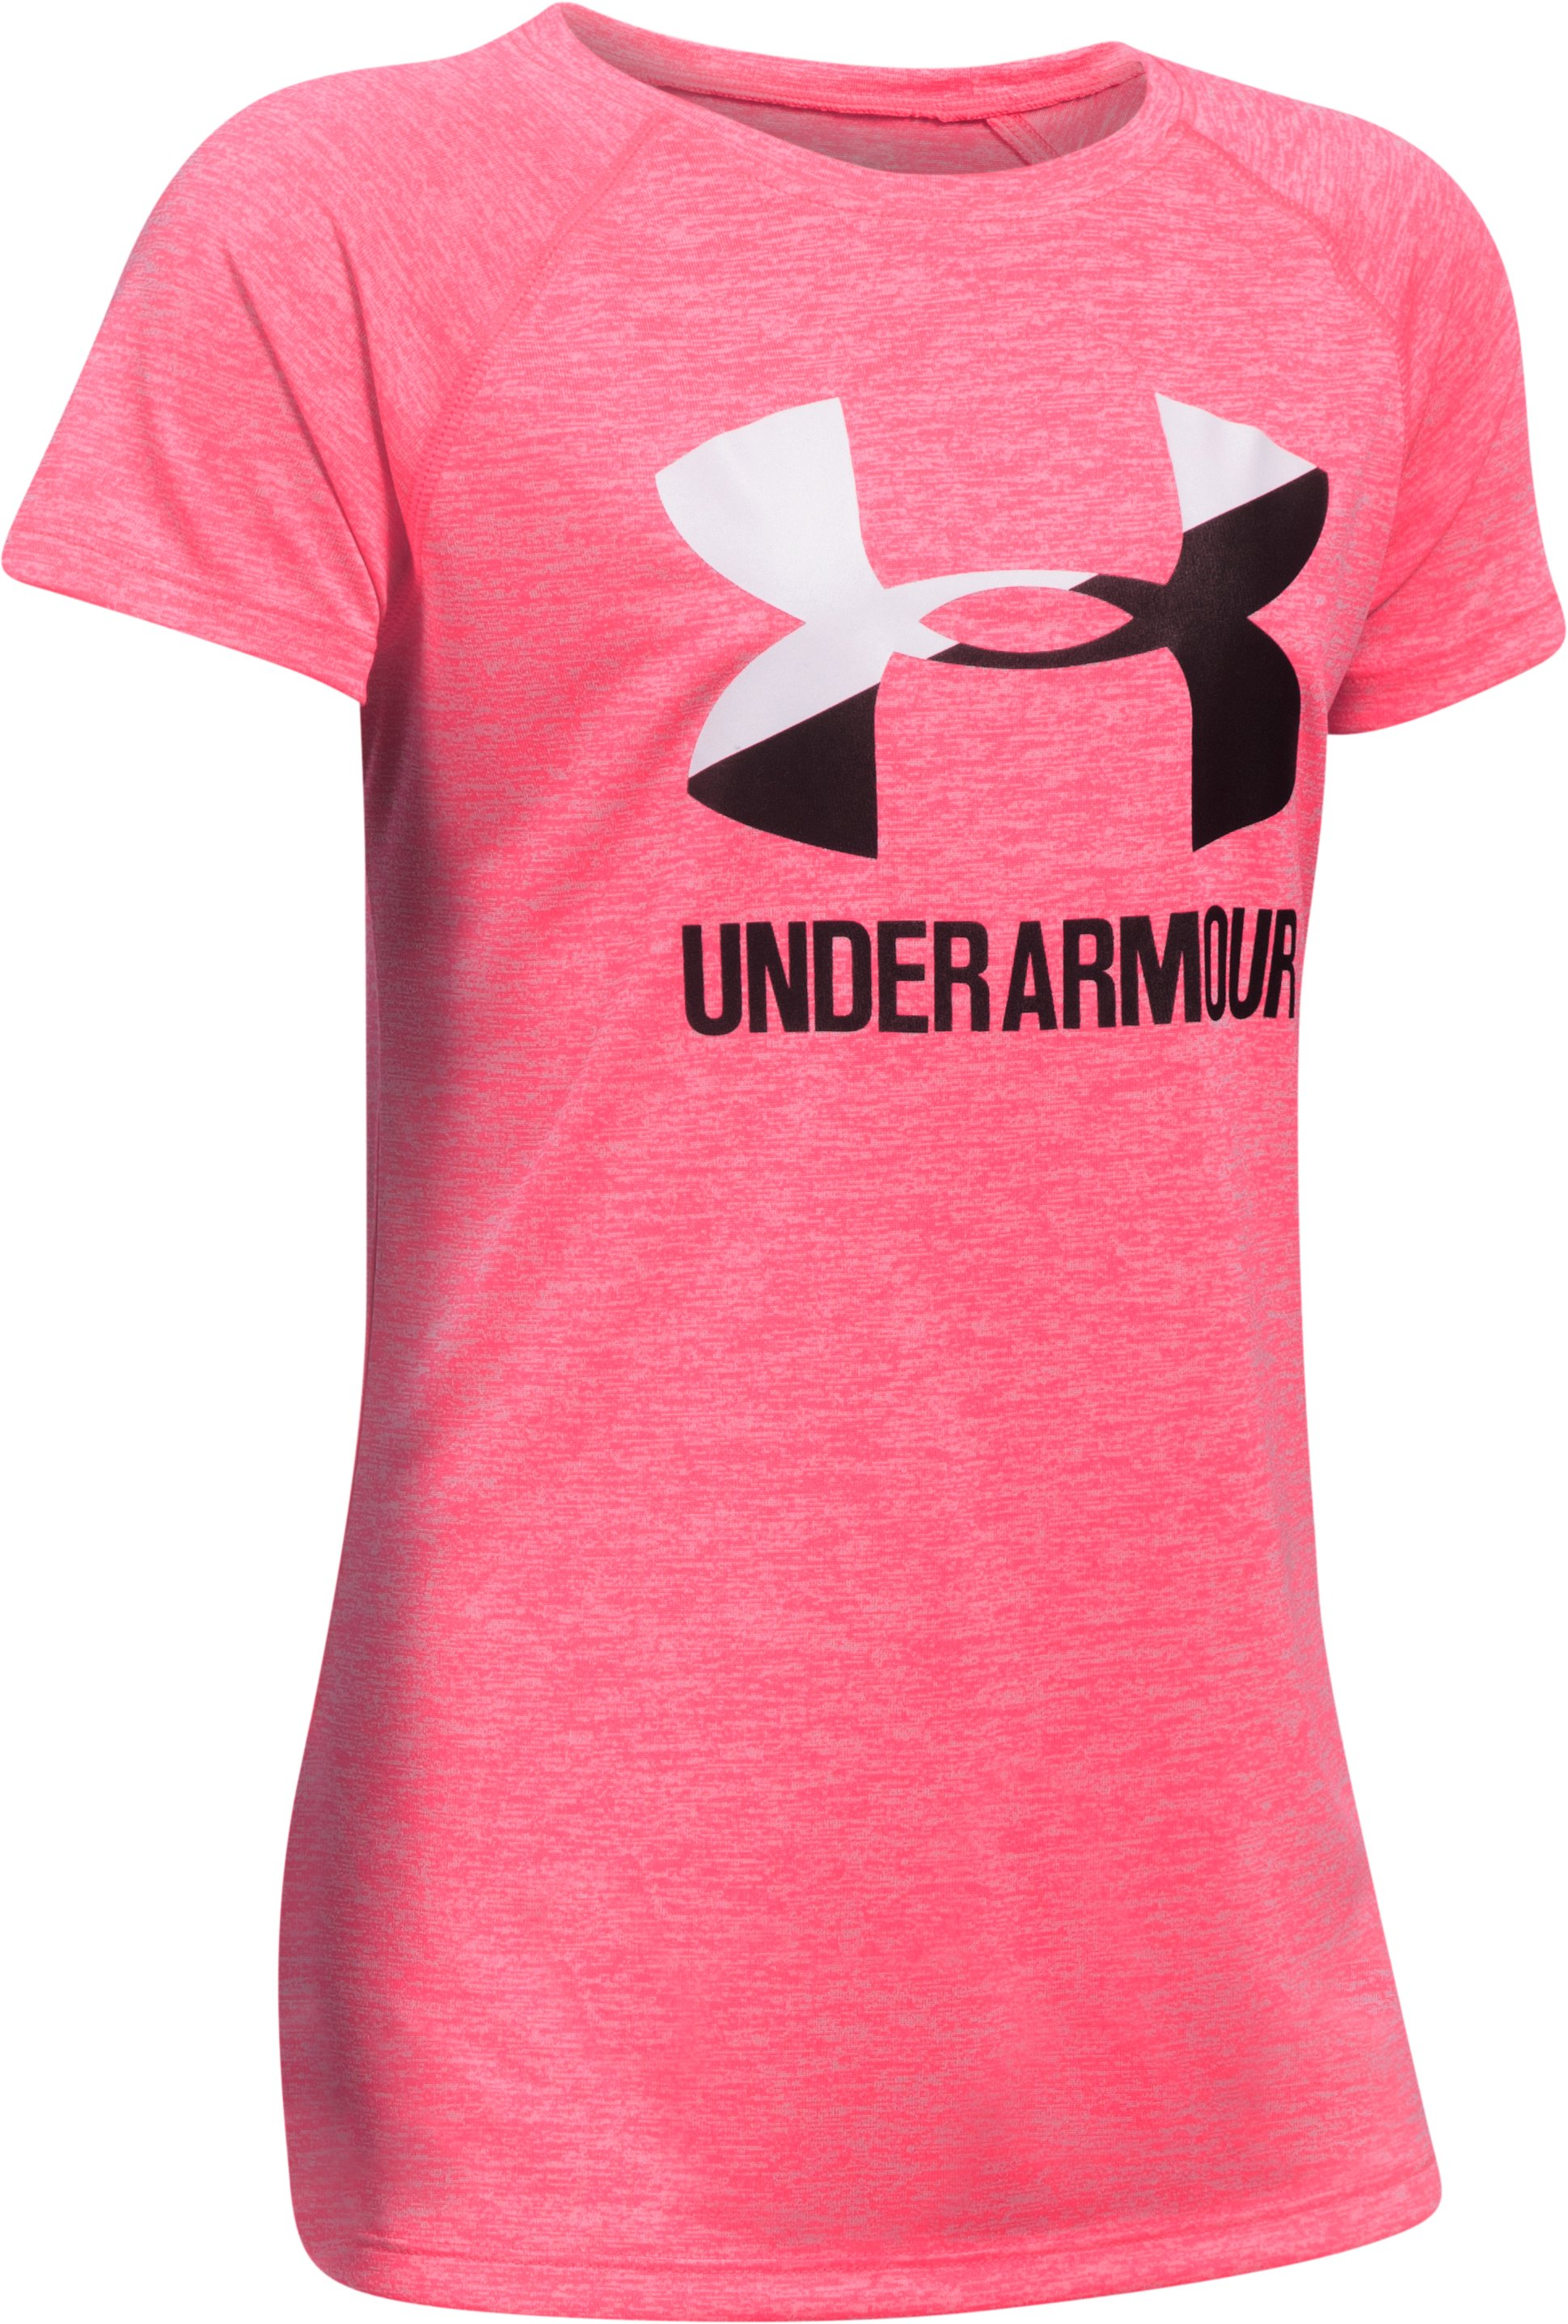 Girls' UA Big Logo Short Sleeve T-Shirt, PENTA PINK